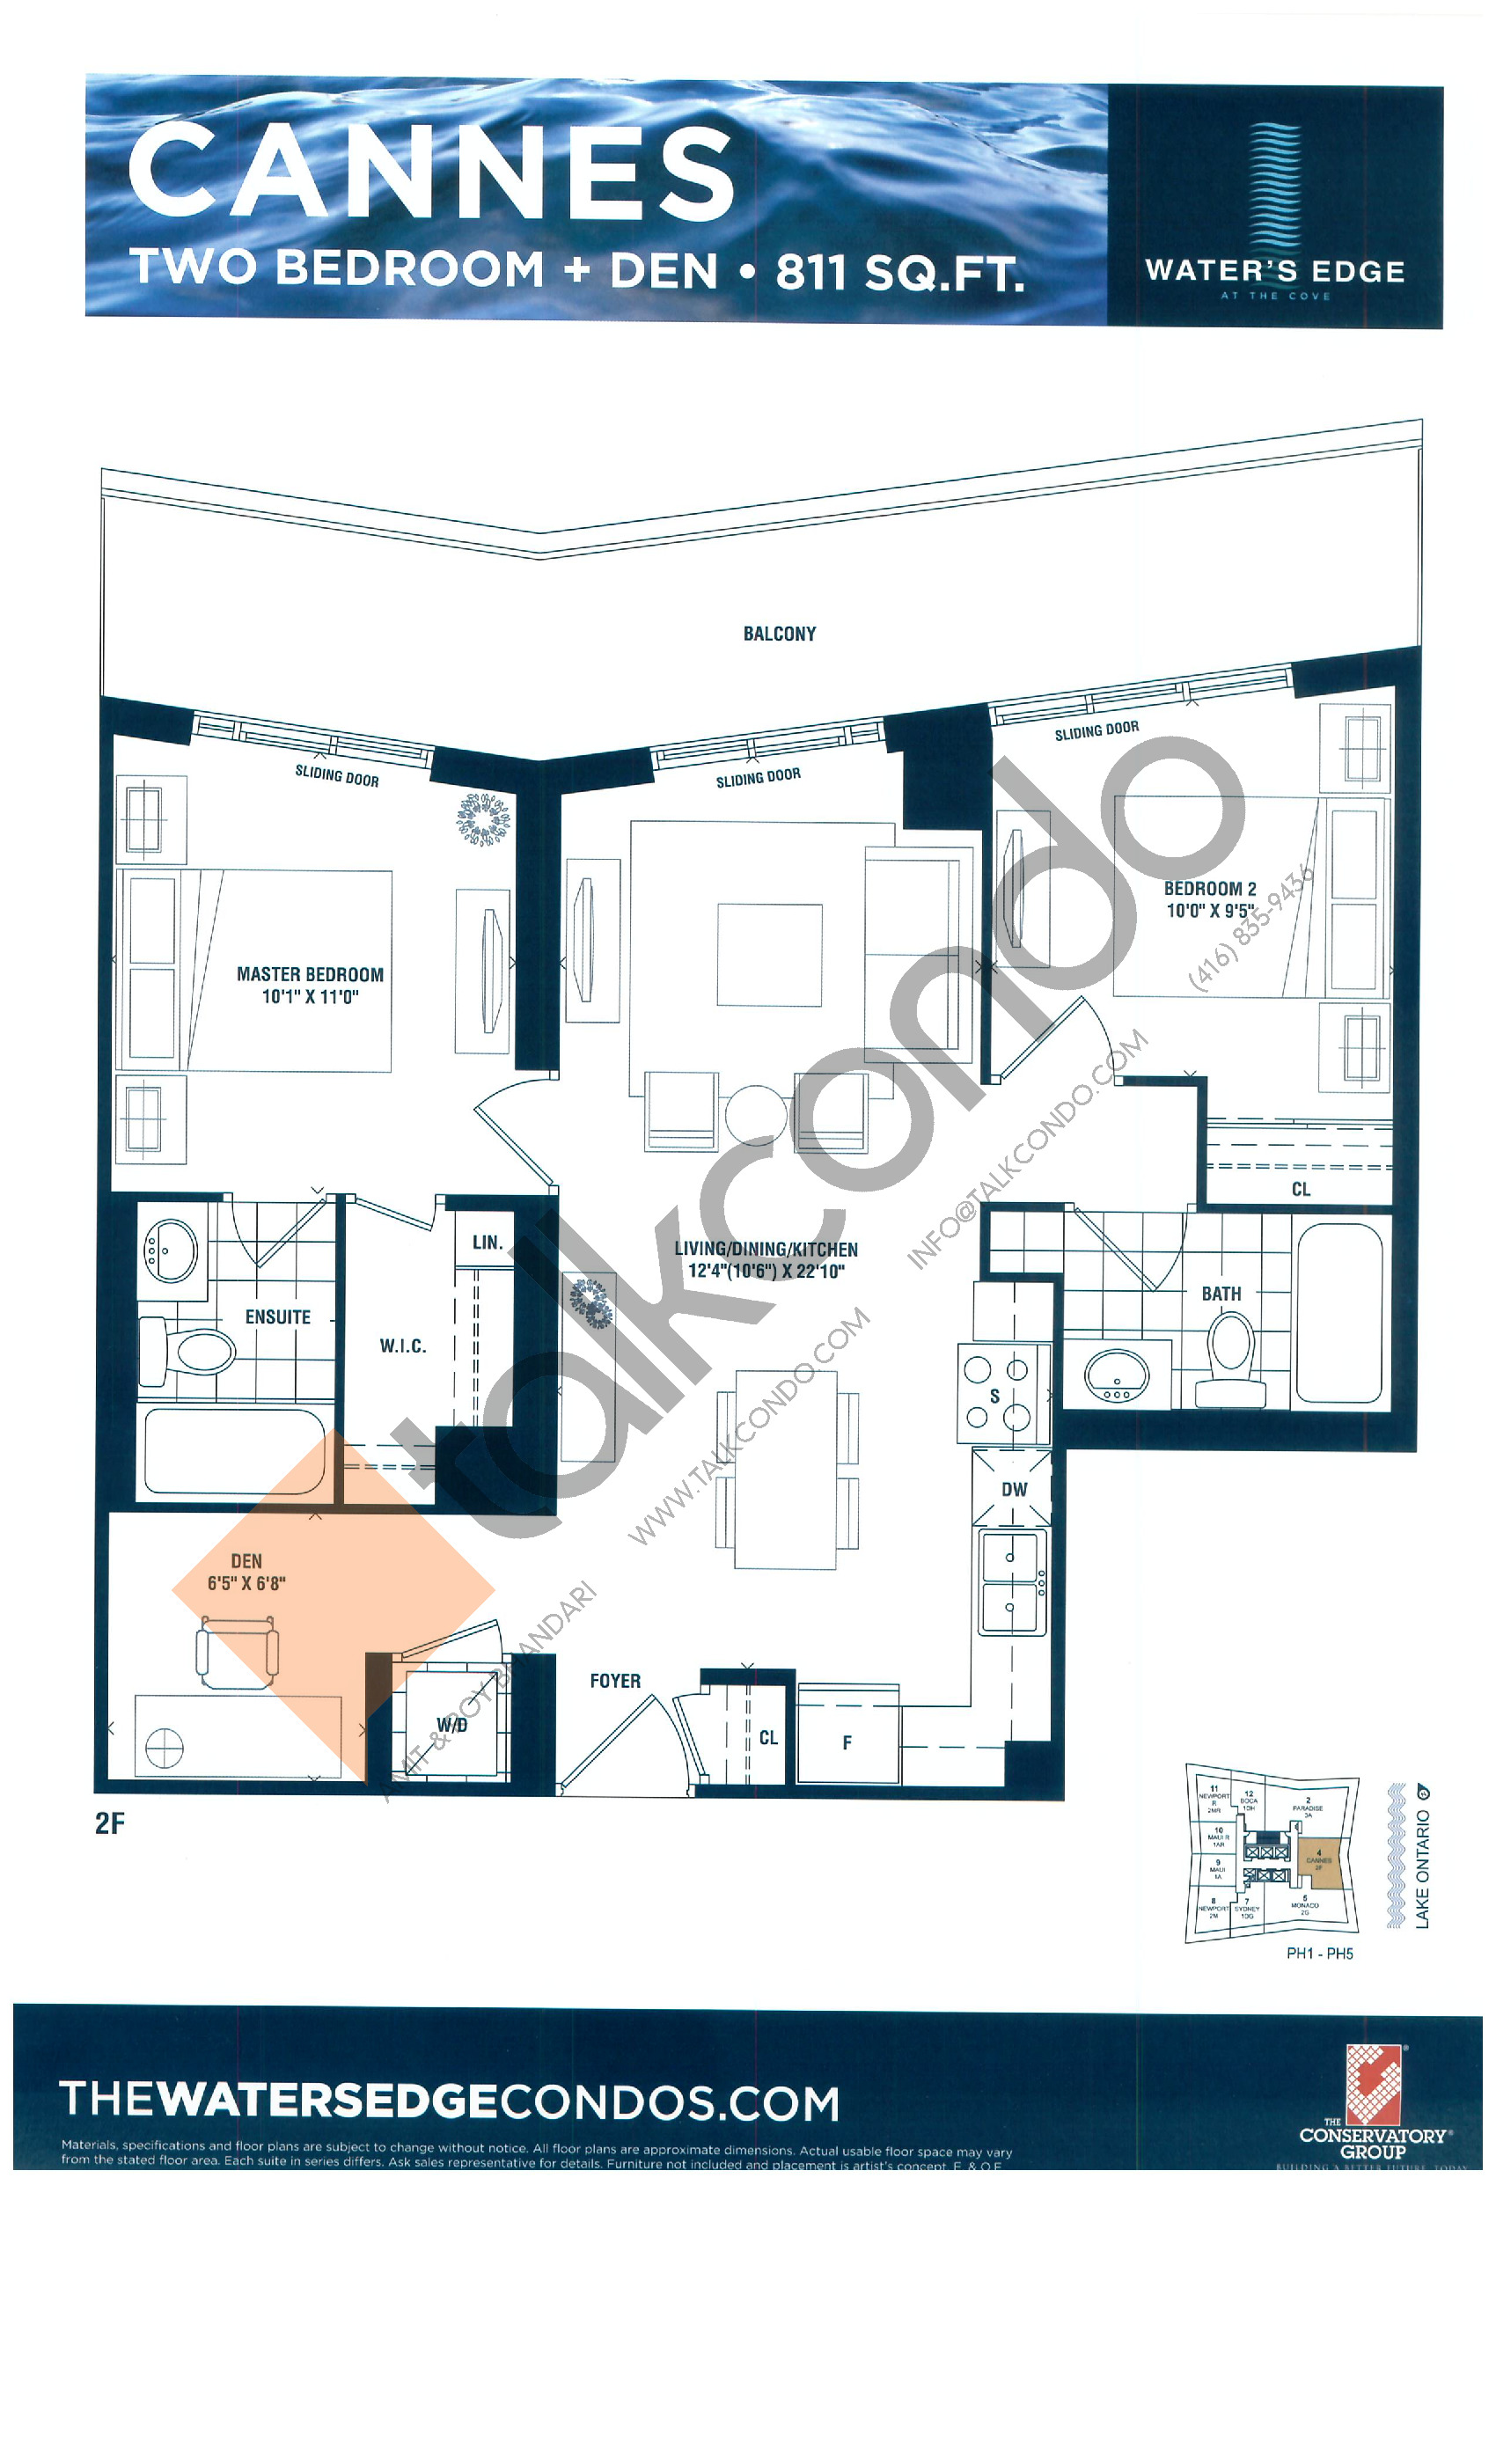 Cannes Floor Plan at Water's Edge at the Cove Condos - 811 sq.ft